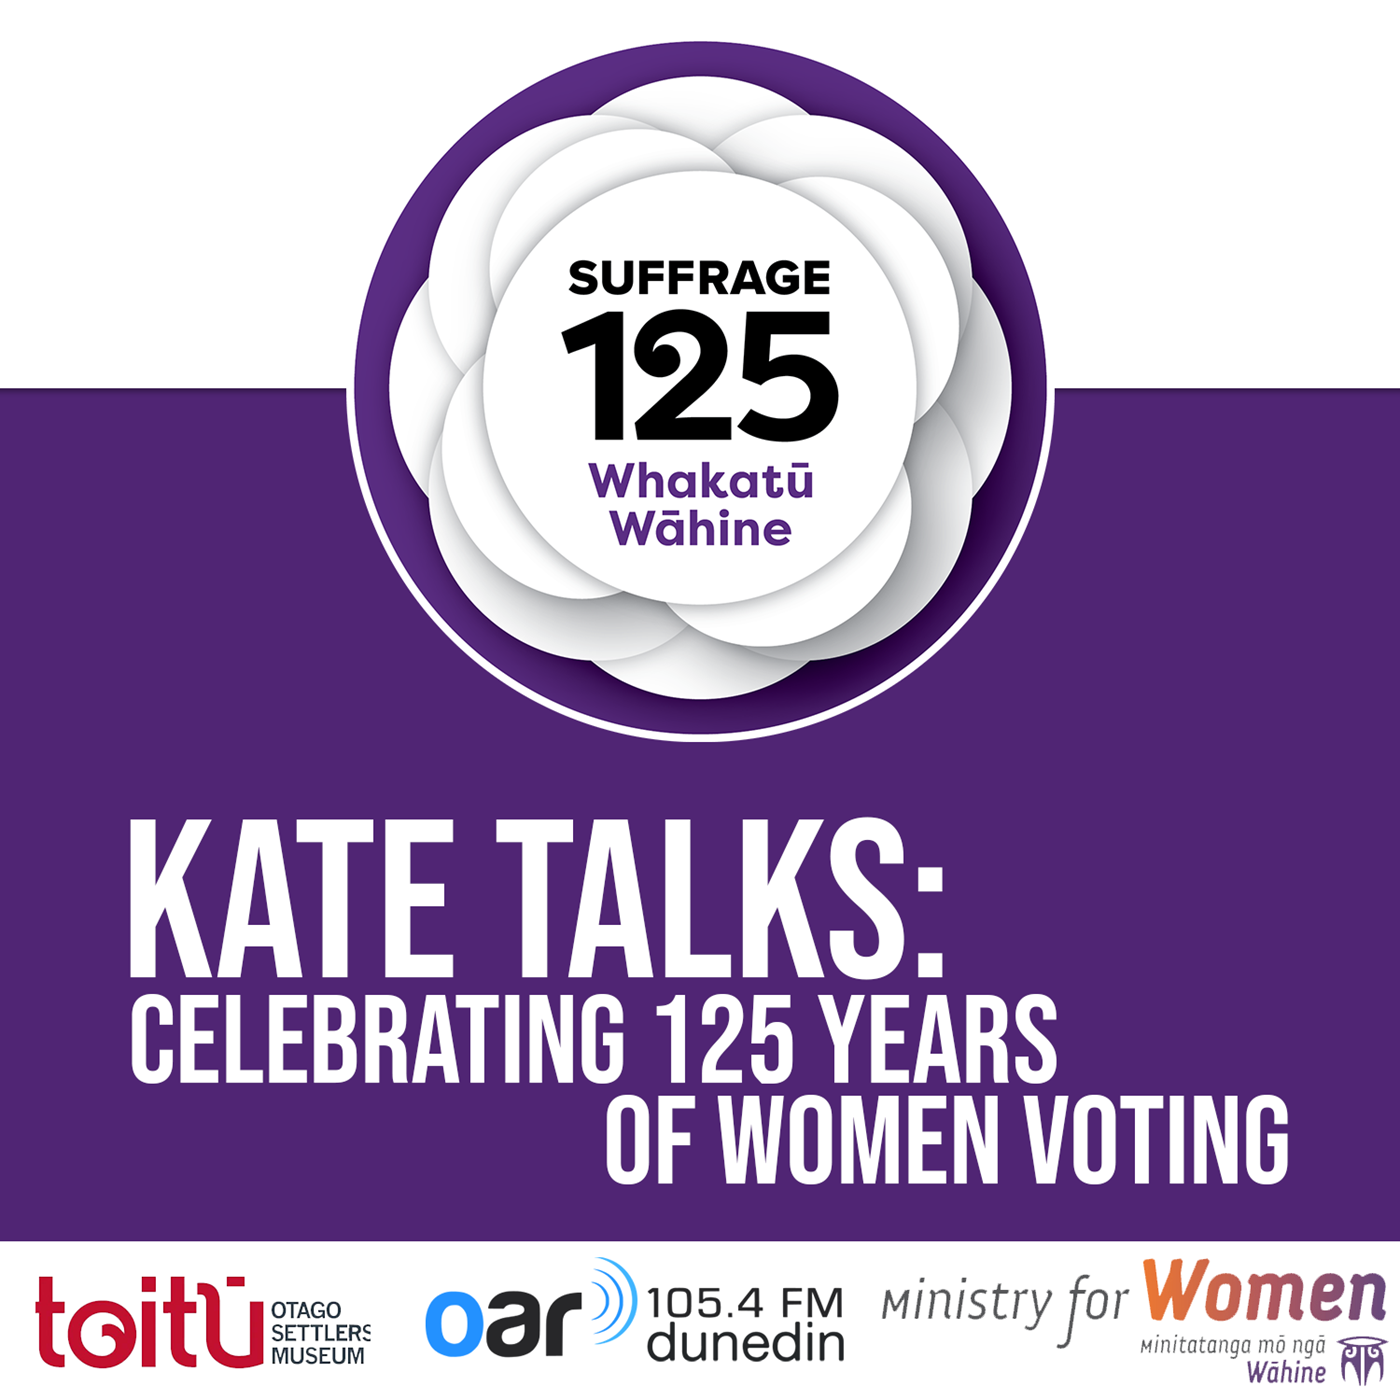 Kate Talks: Celebrating 125 Years of Women Voting